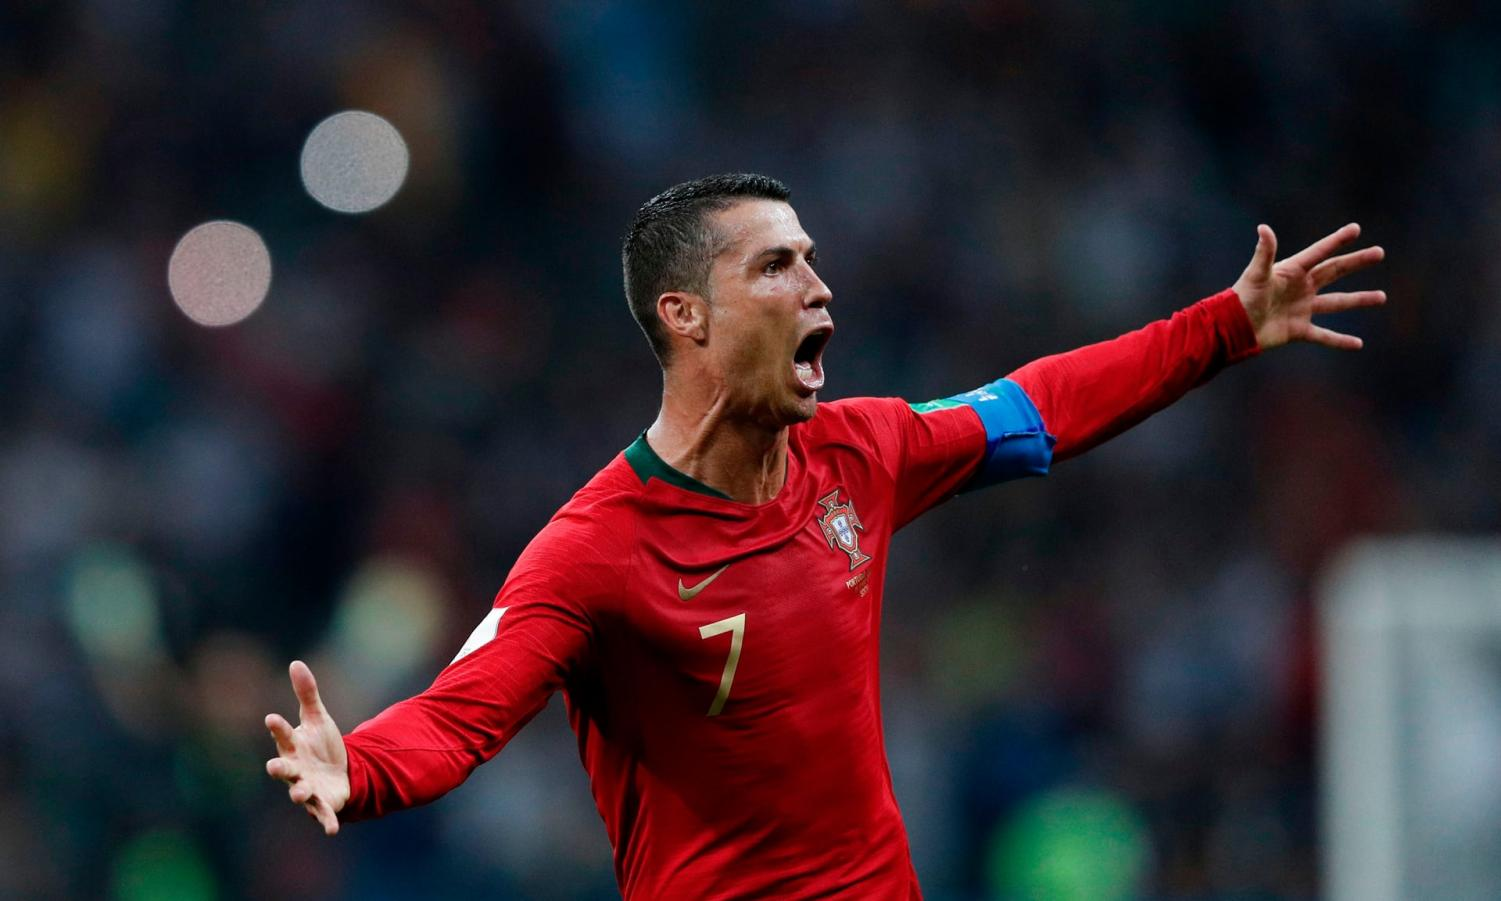 Ronaldo's hat trick sealed a share of the spoils for Portugal against rival Spain.